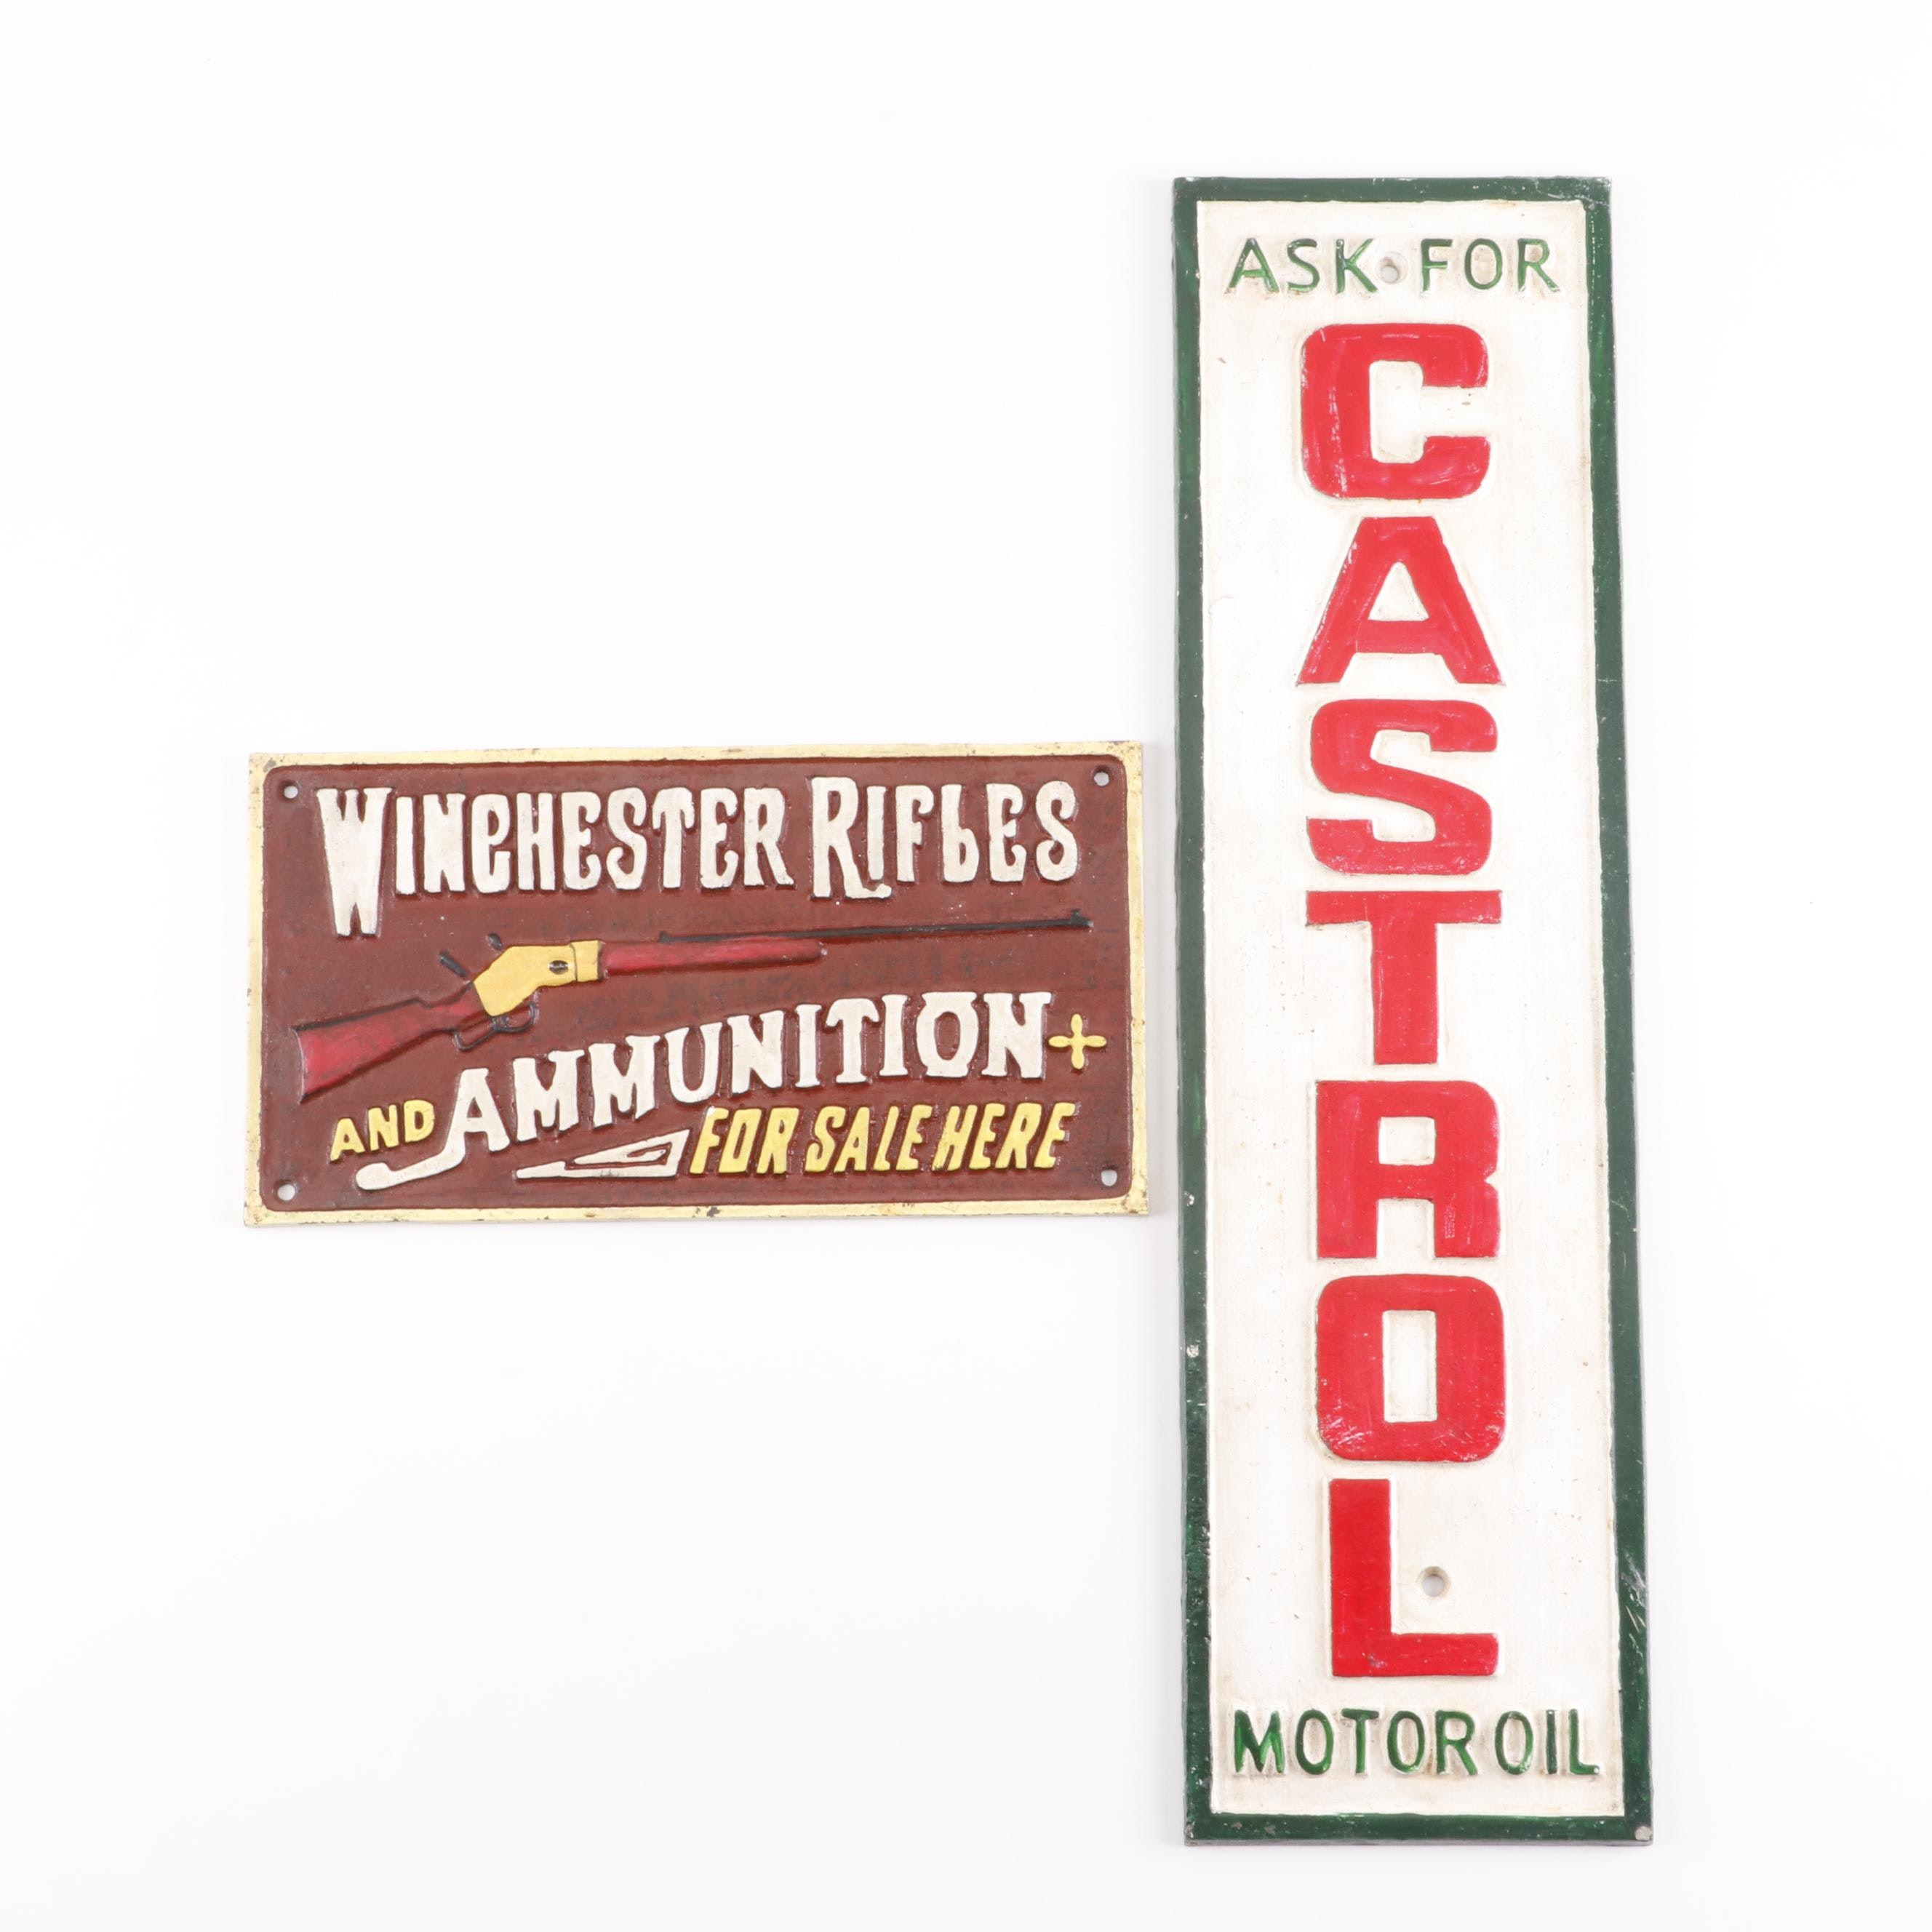 Cast Iron Reproduction Store Signs including Castrol Motor Oil